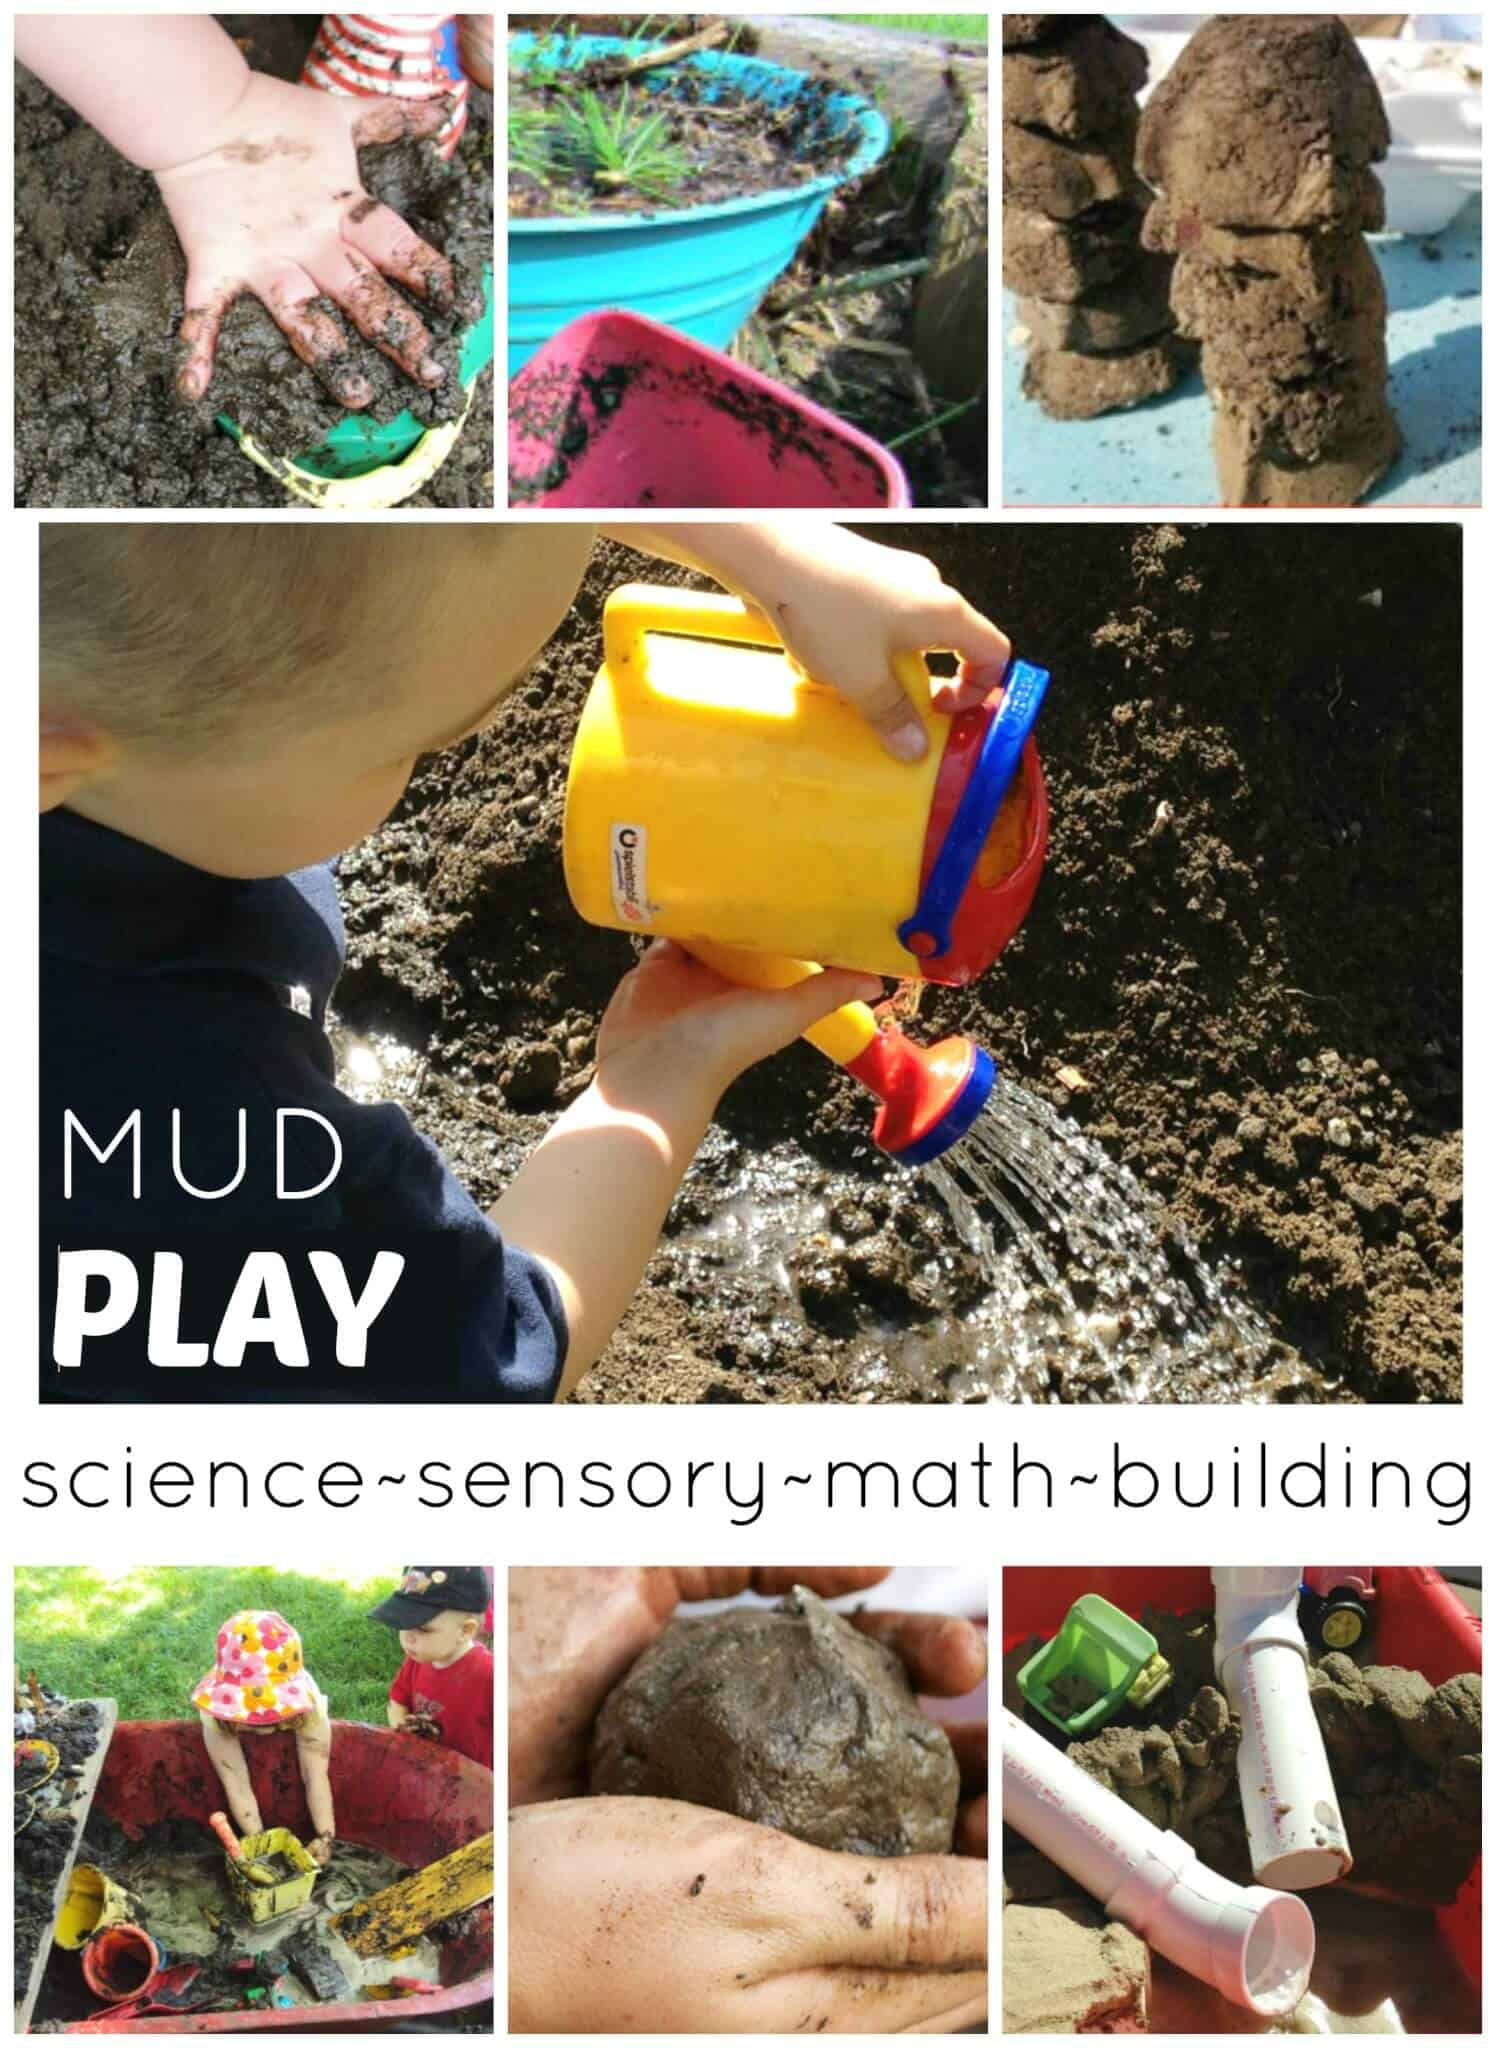 Mud play activities sensory science math building play for Science dirt